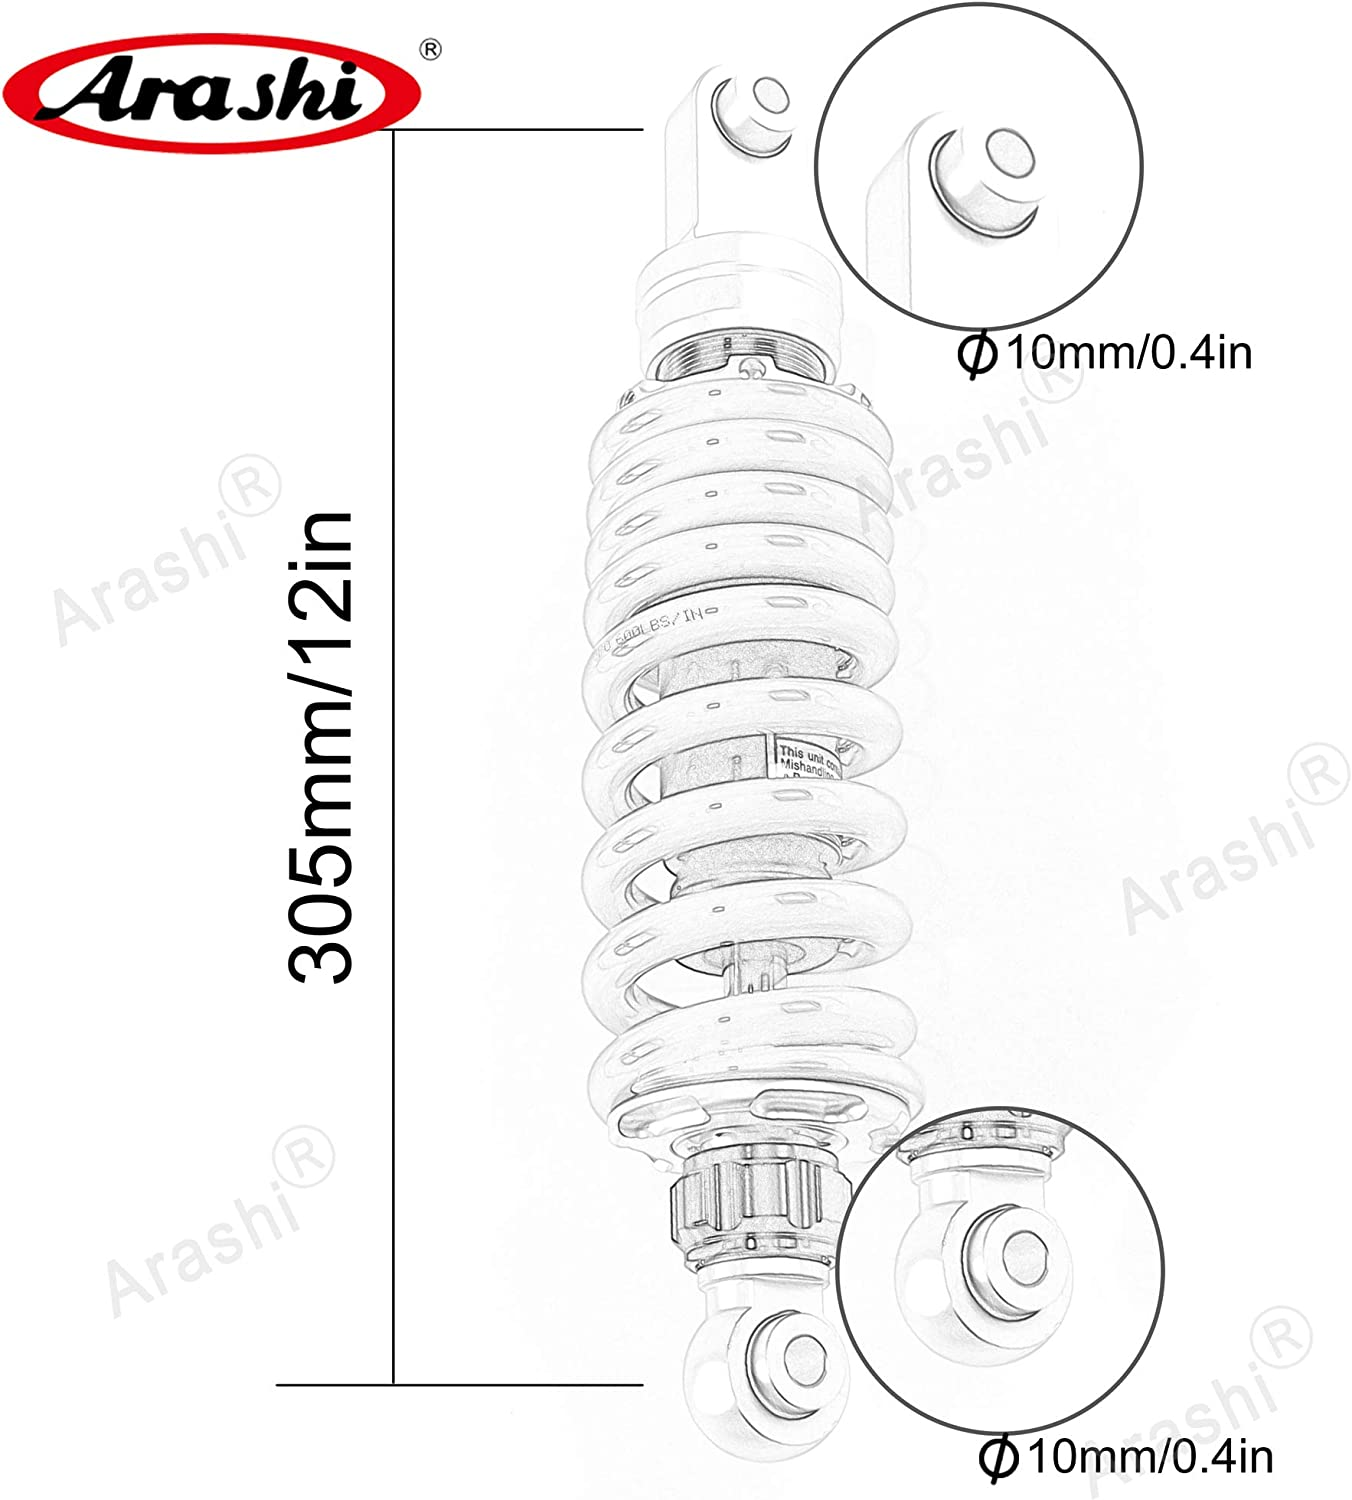 Arashi 305mm //12 Shock Absorber Rear Suspension Universal for Honda NC700 NC 700 Motorcycle Replacement Accessories Gold 1 Pcs